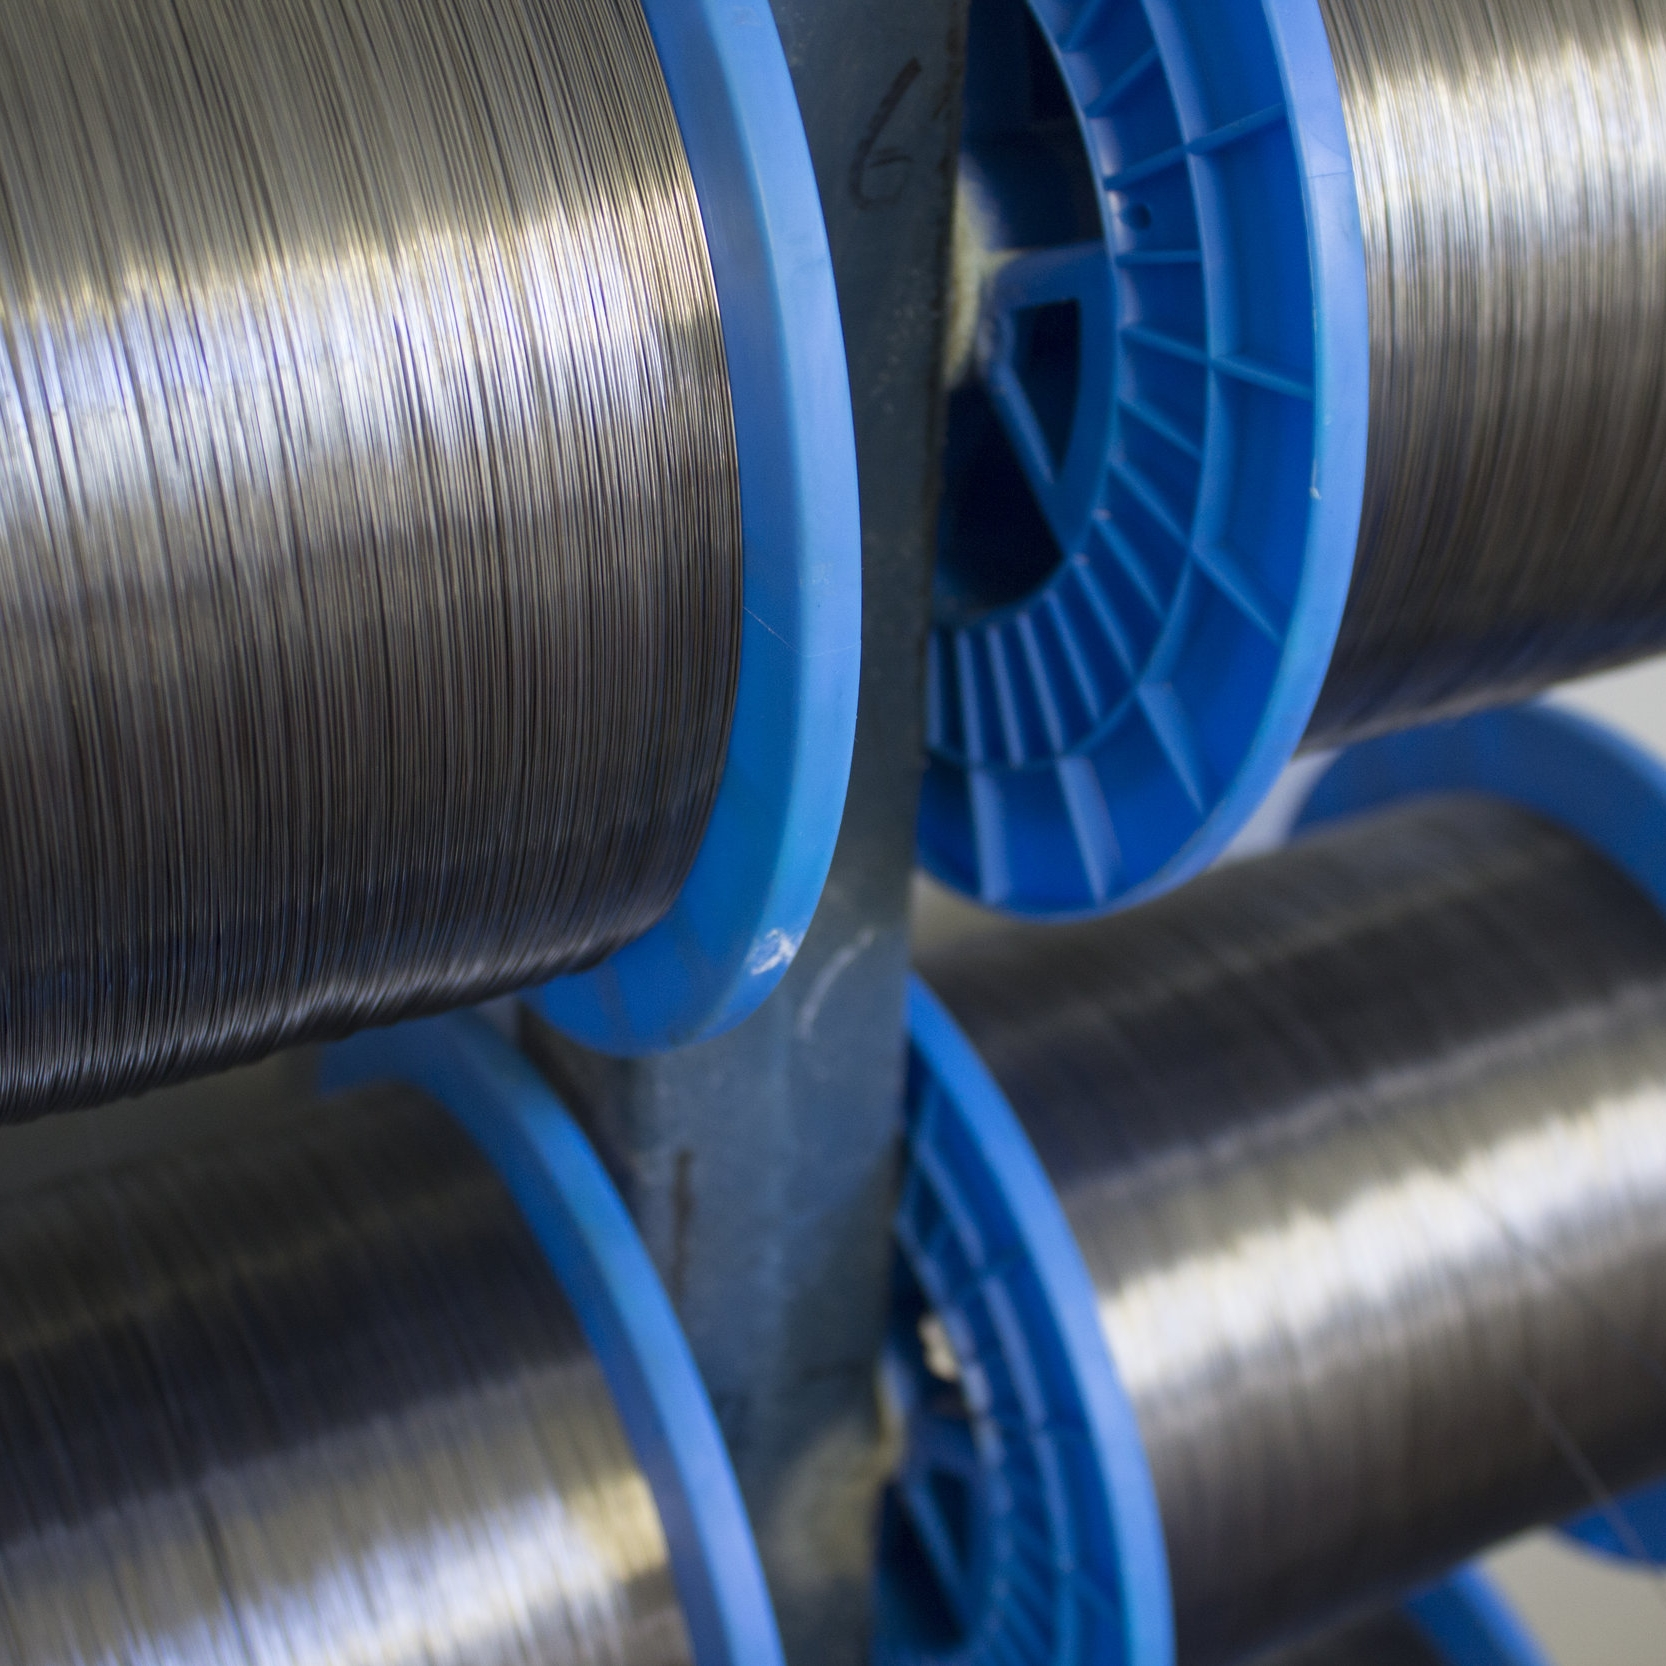 Soft annealed steel wire from Europe - This wire offers the flexibility and durability needed to keep the cane on the fruiting wire throughout the season.This level of testing has produced a high quality twist tie for use in vineyard, farm or garden.